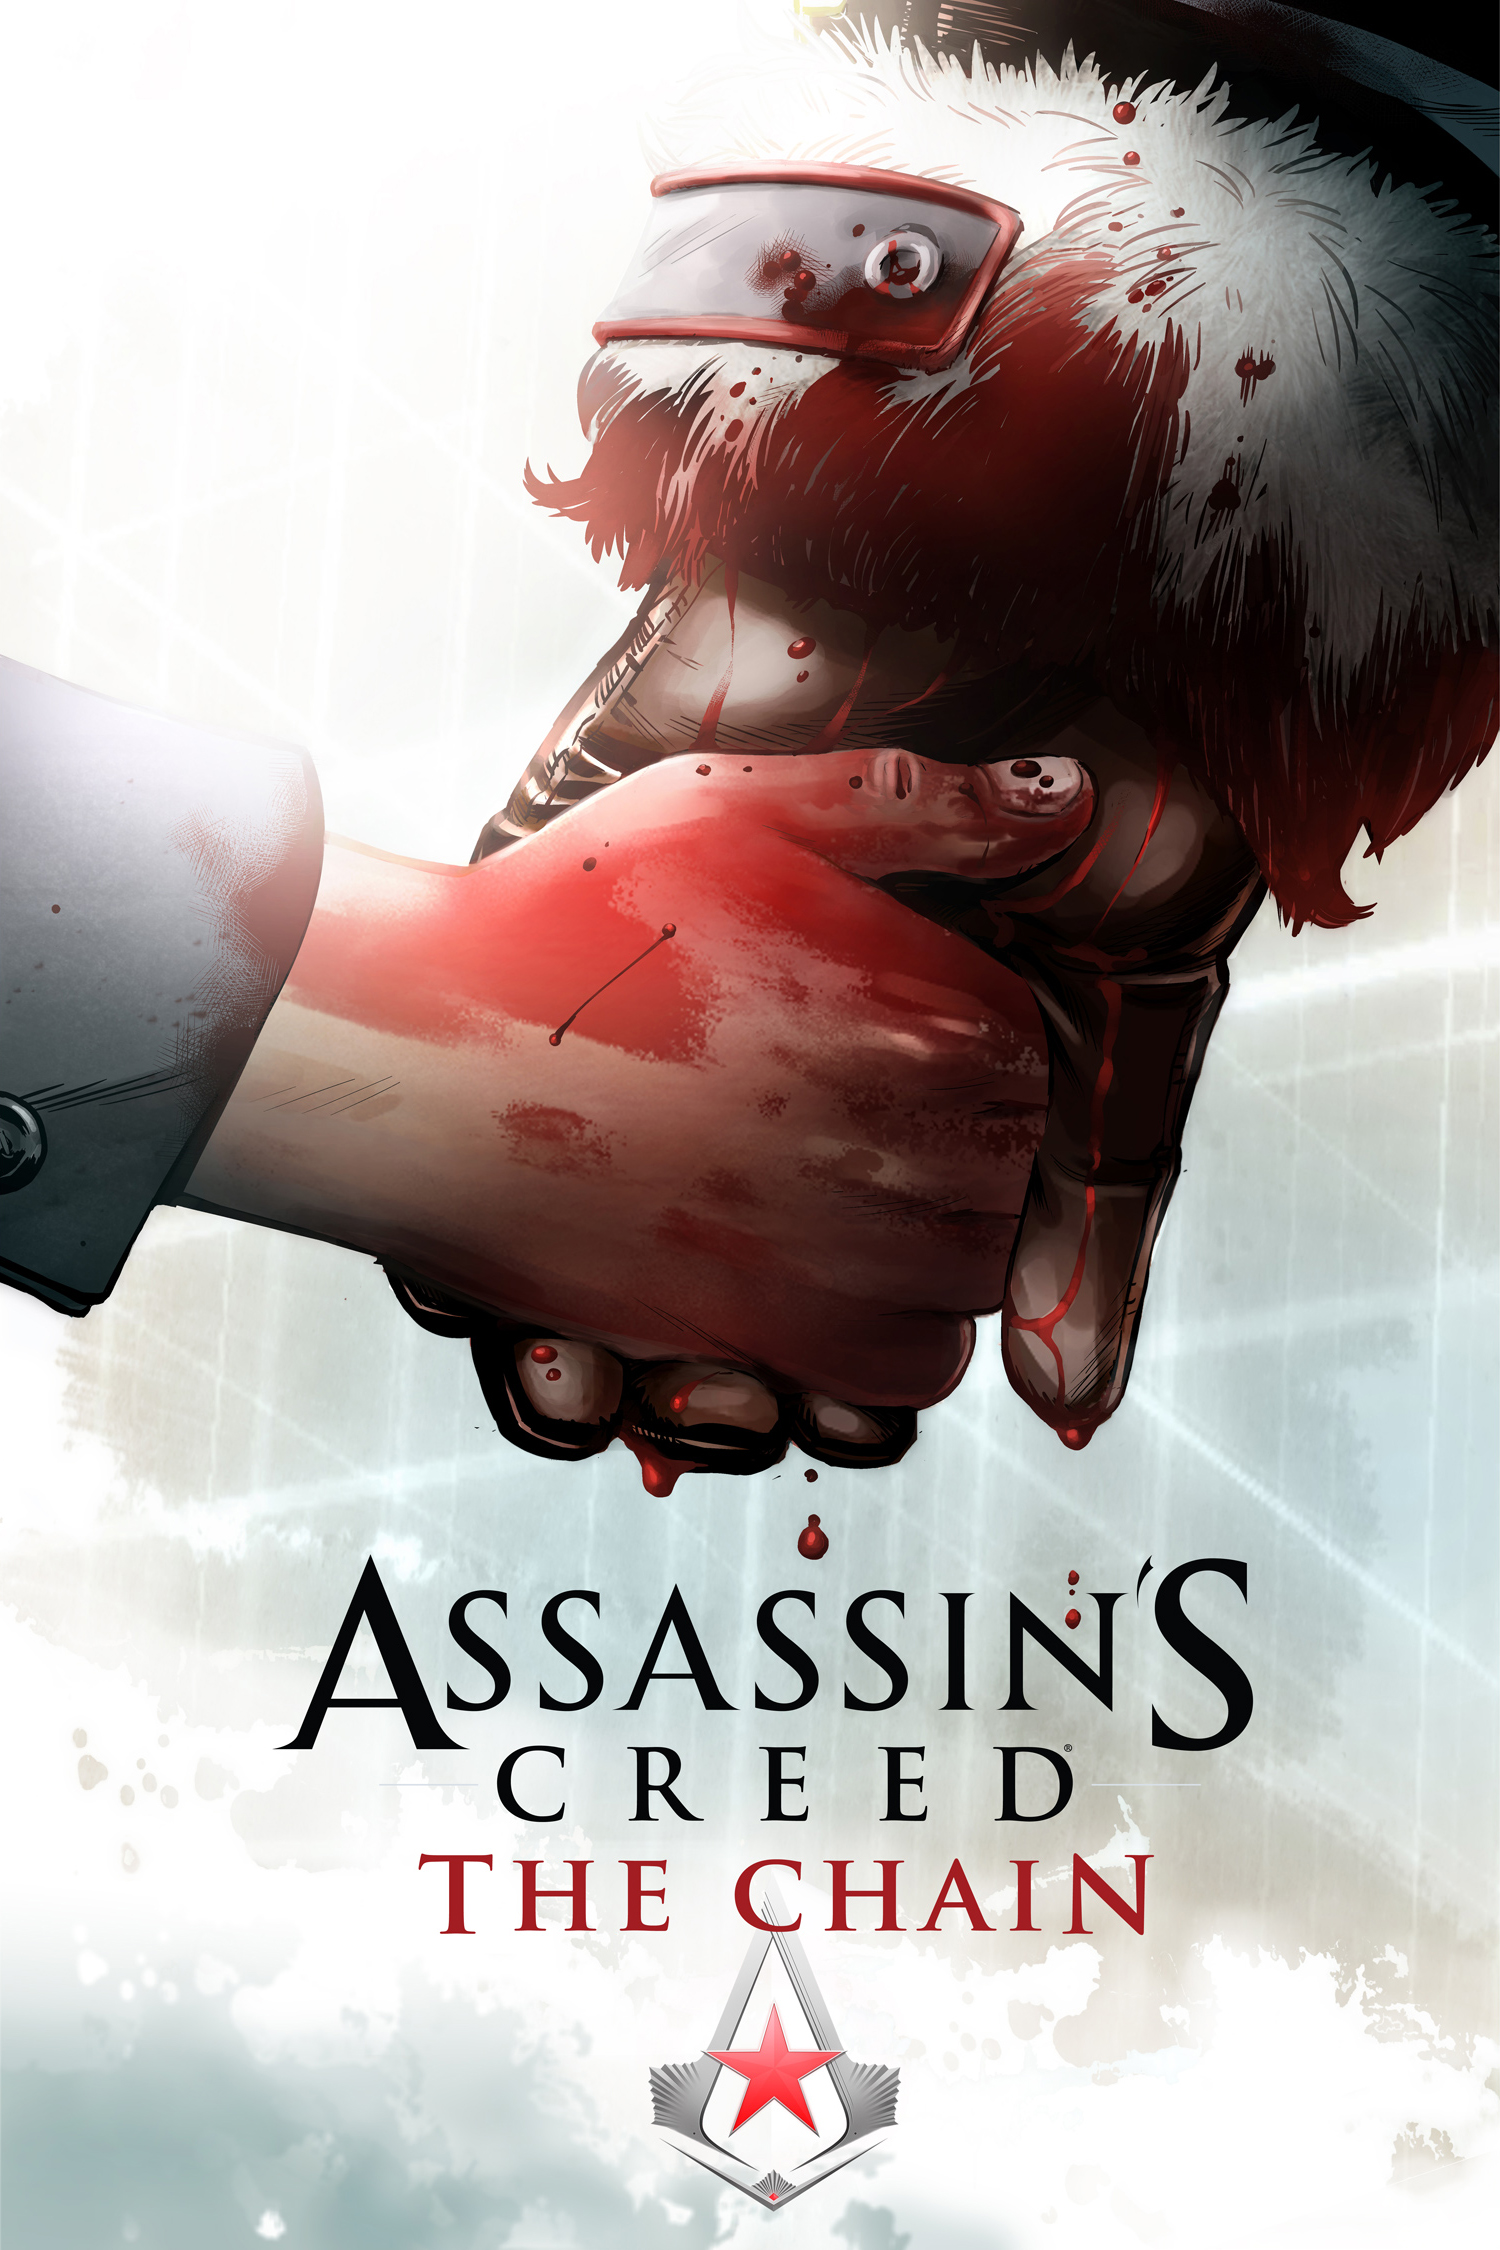 User blog:Subject20/assassin's creed : comic-con - The ...